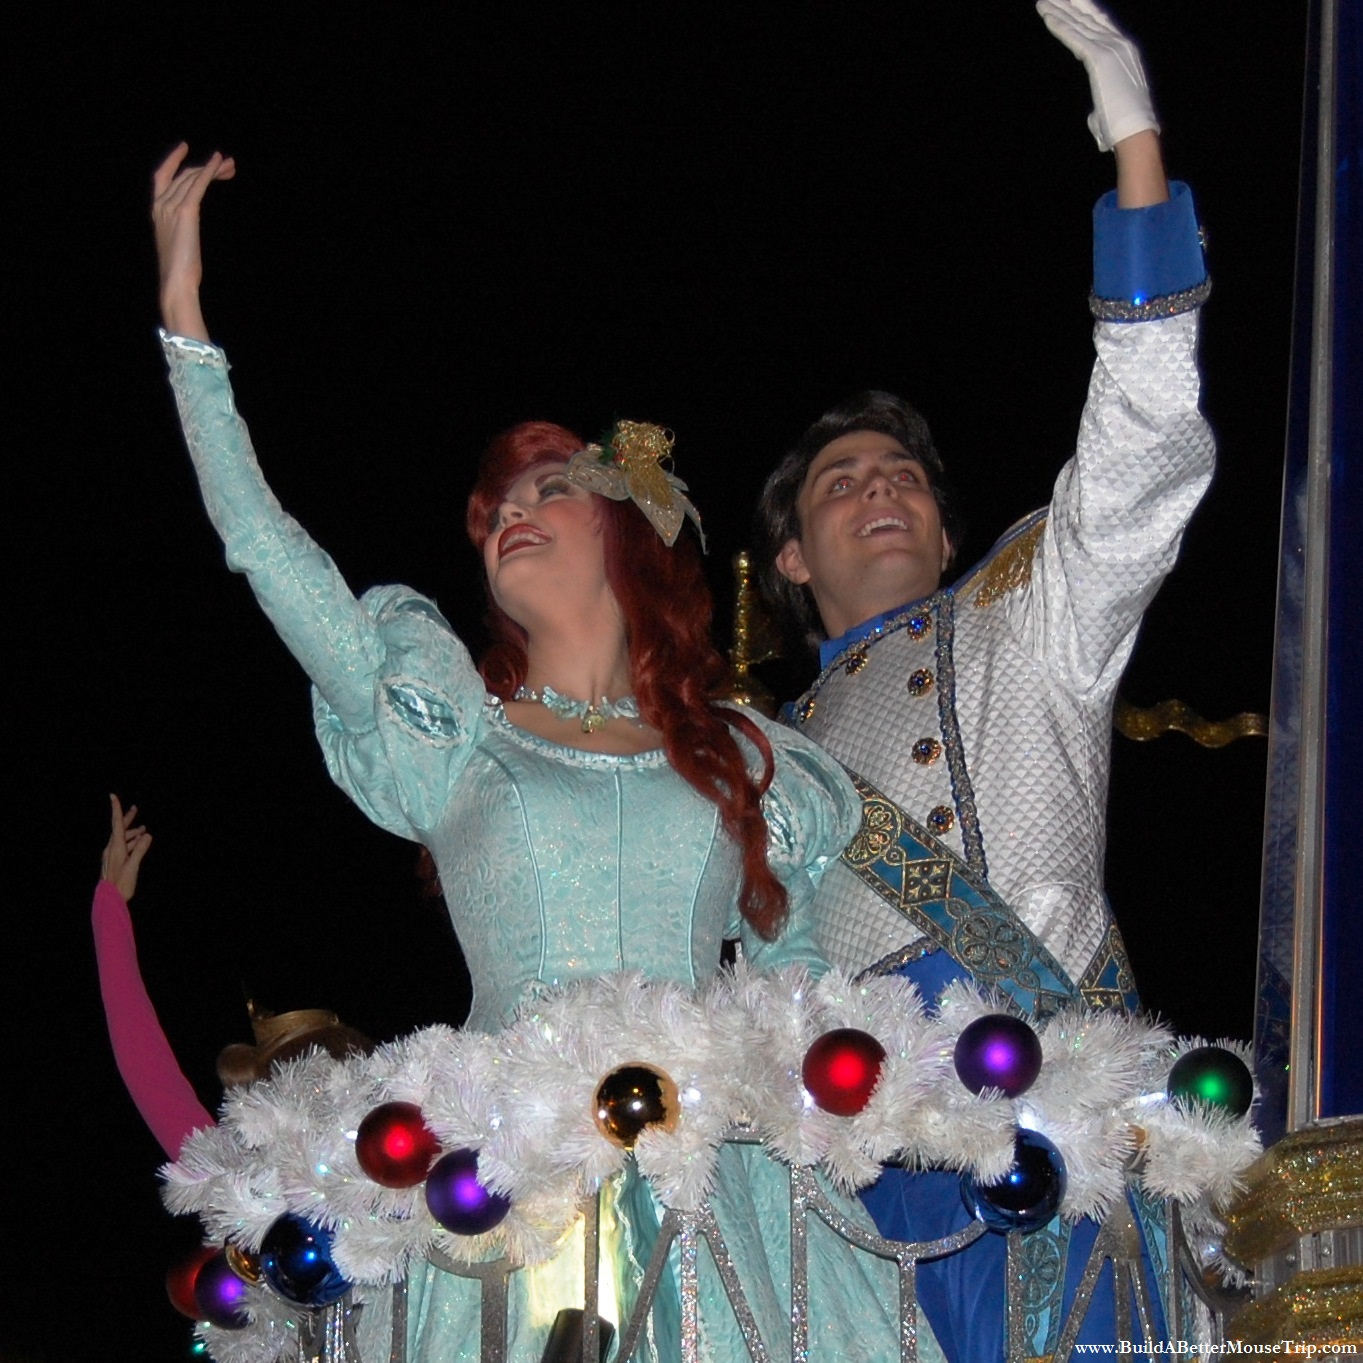 Ariel and her prince in the Once Upon a Christmastime Parade at Mickey's Very Merry Christmas Party at Disney World.